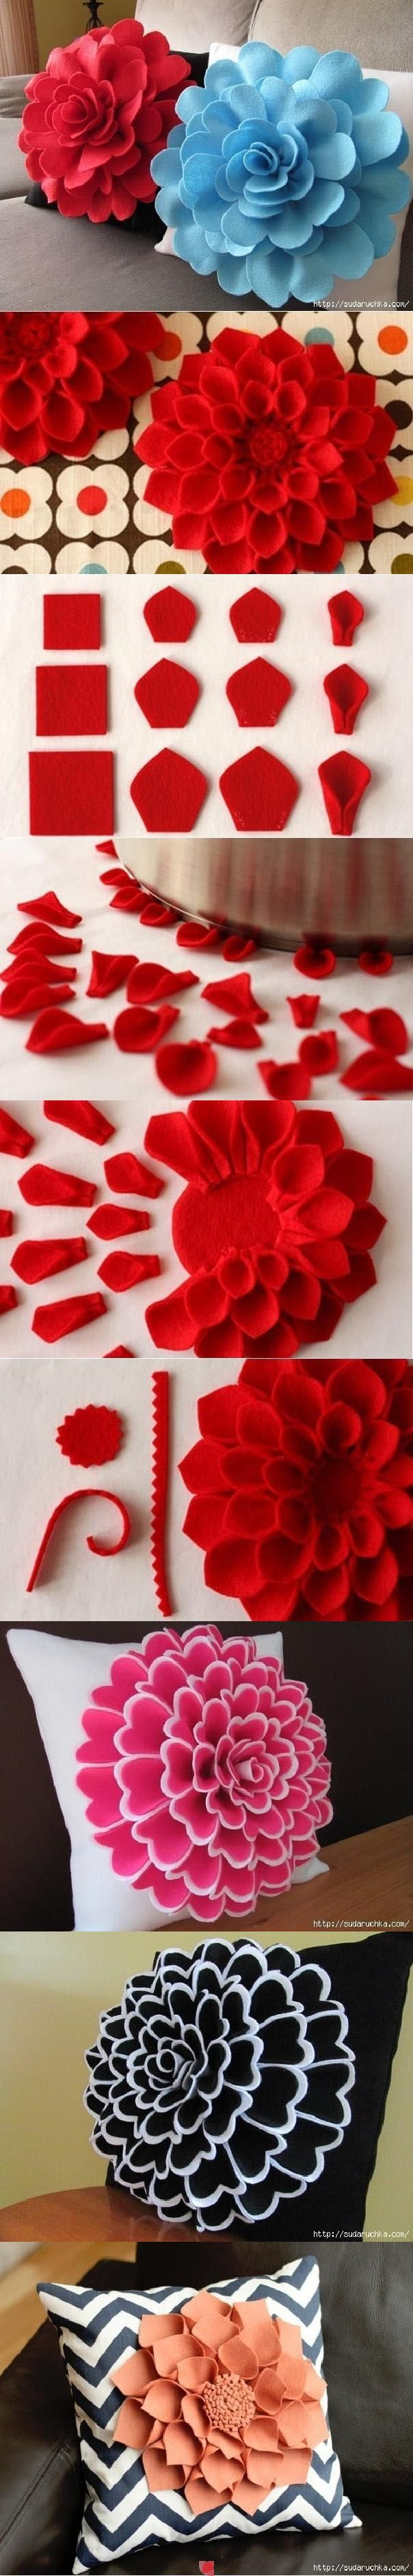 Those are actually little felt pieces, but this technique could be used with fondant or airheads/etc for a cake decoration. #frosting